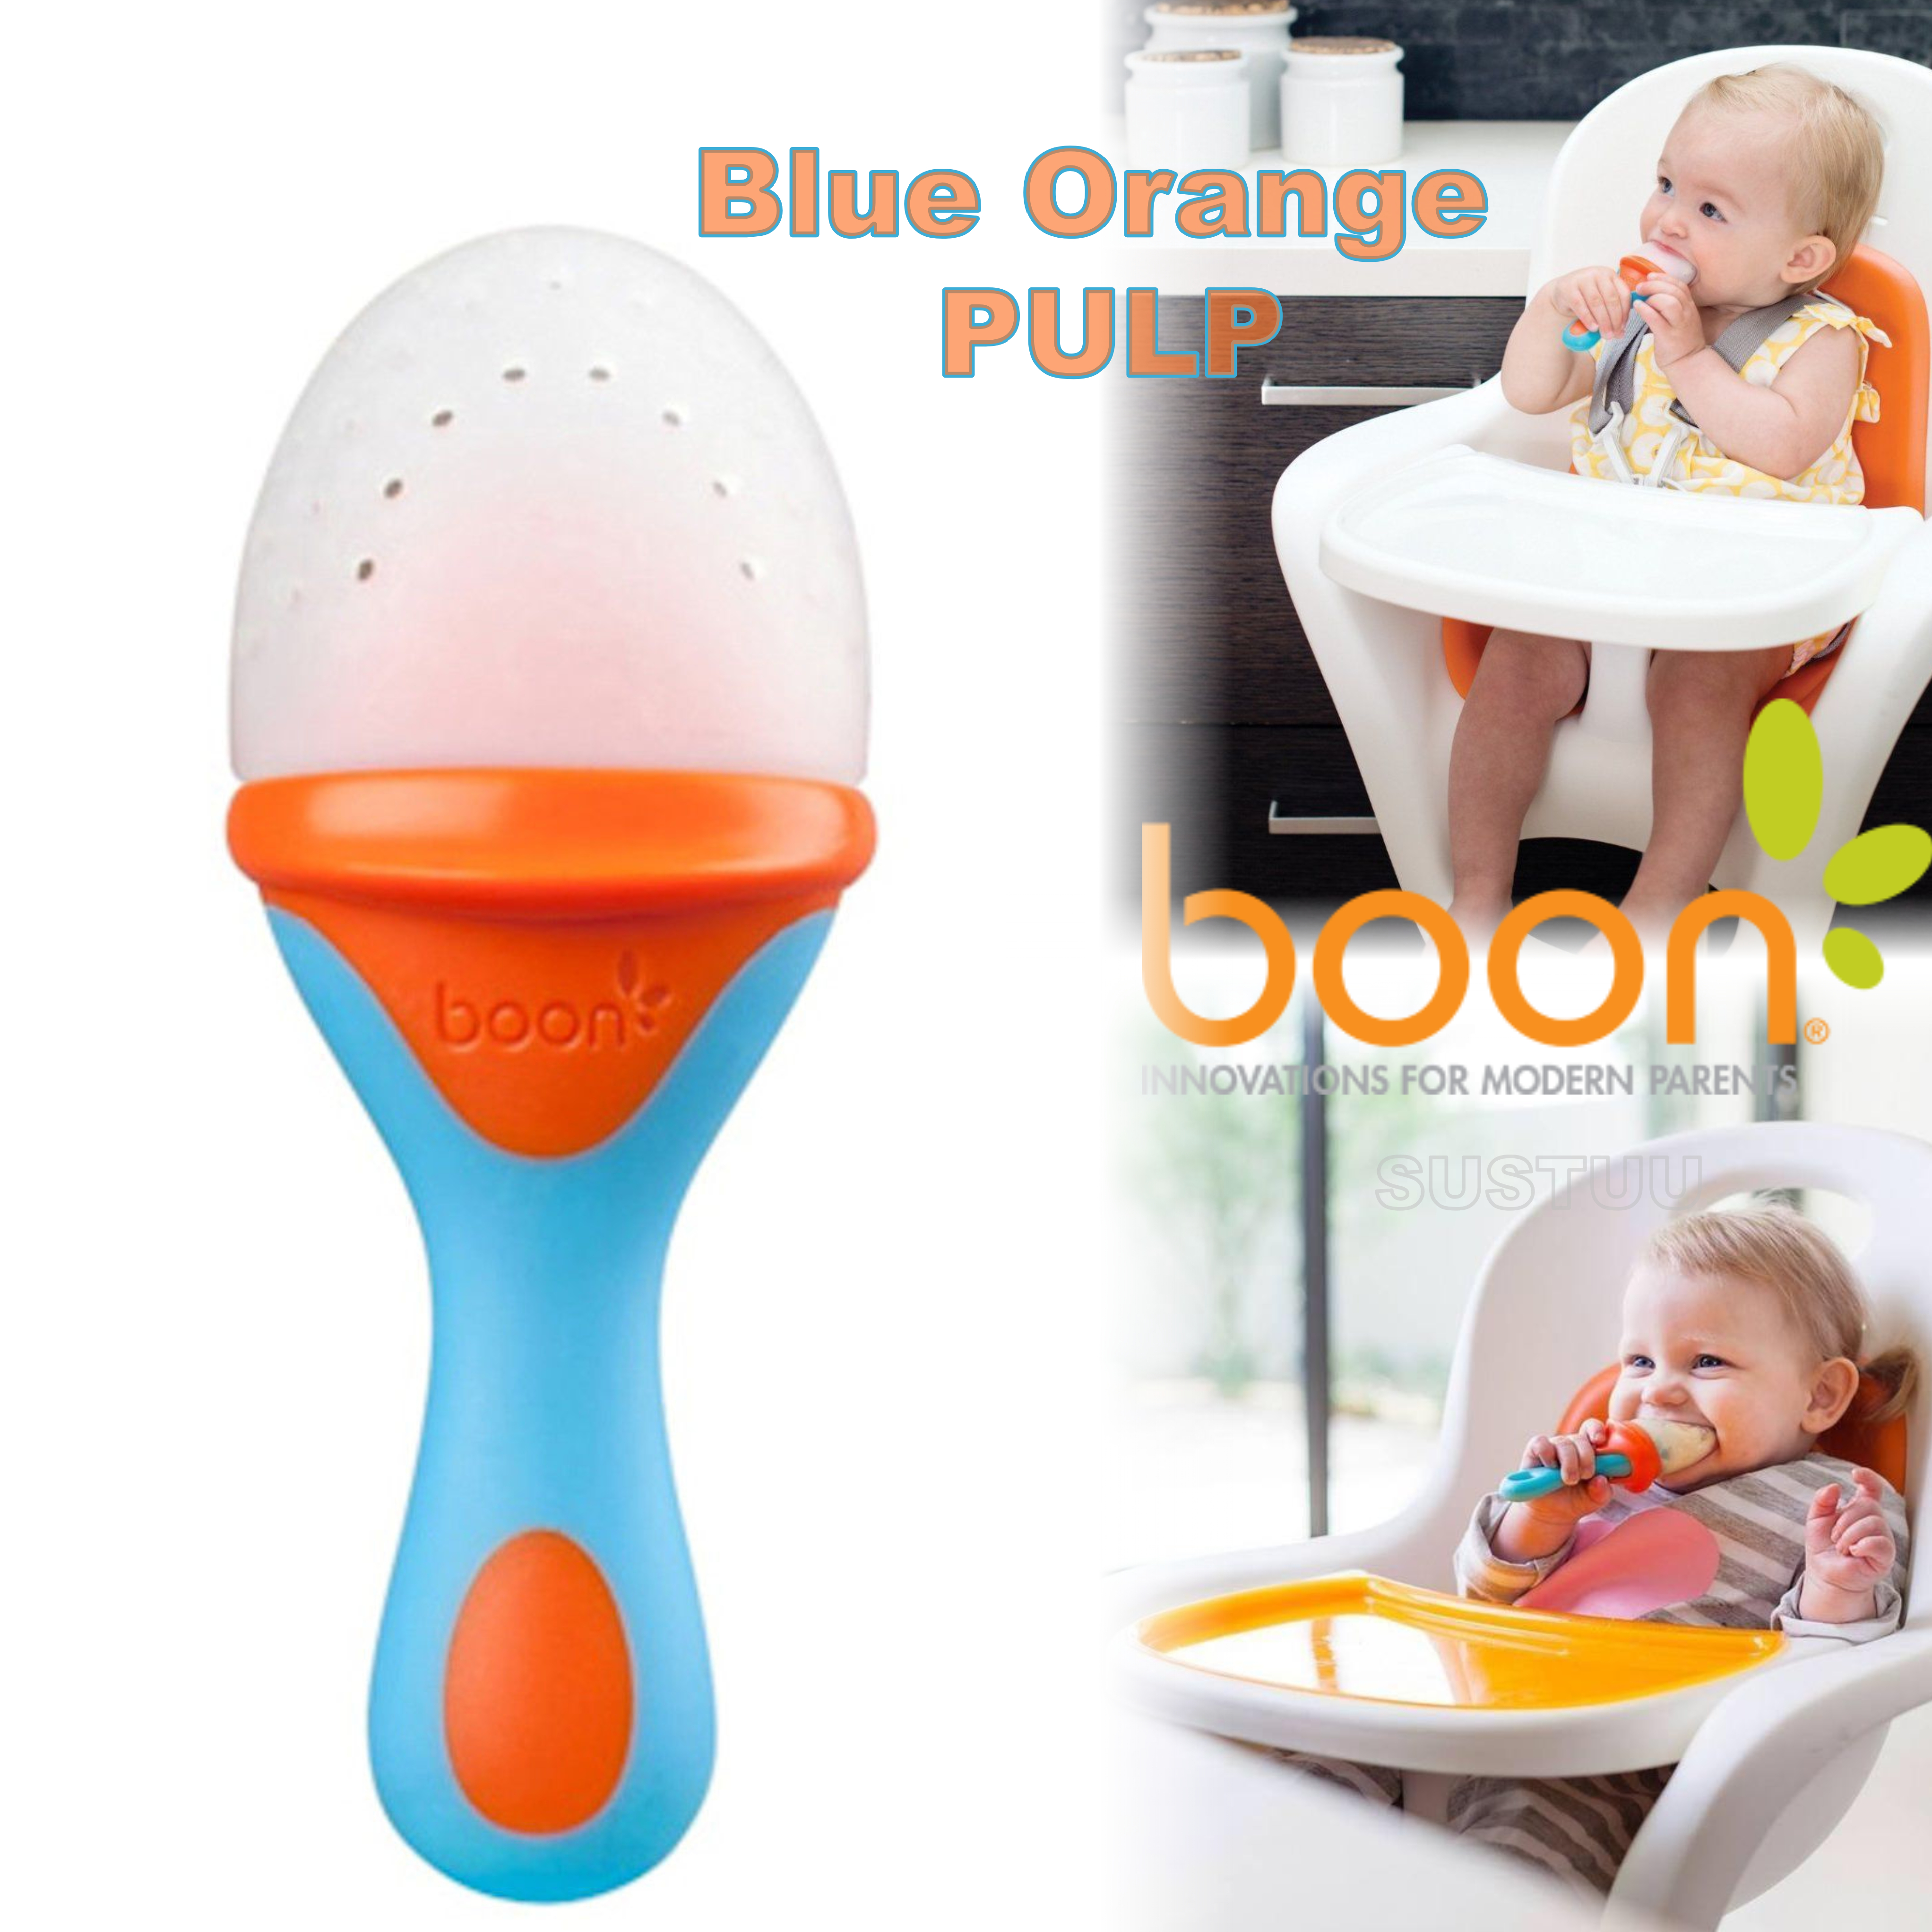 Boon Pulp Blue Orange|Silicon Baby Food Feeder|Phthalate PVC BPA Free|6+ Month